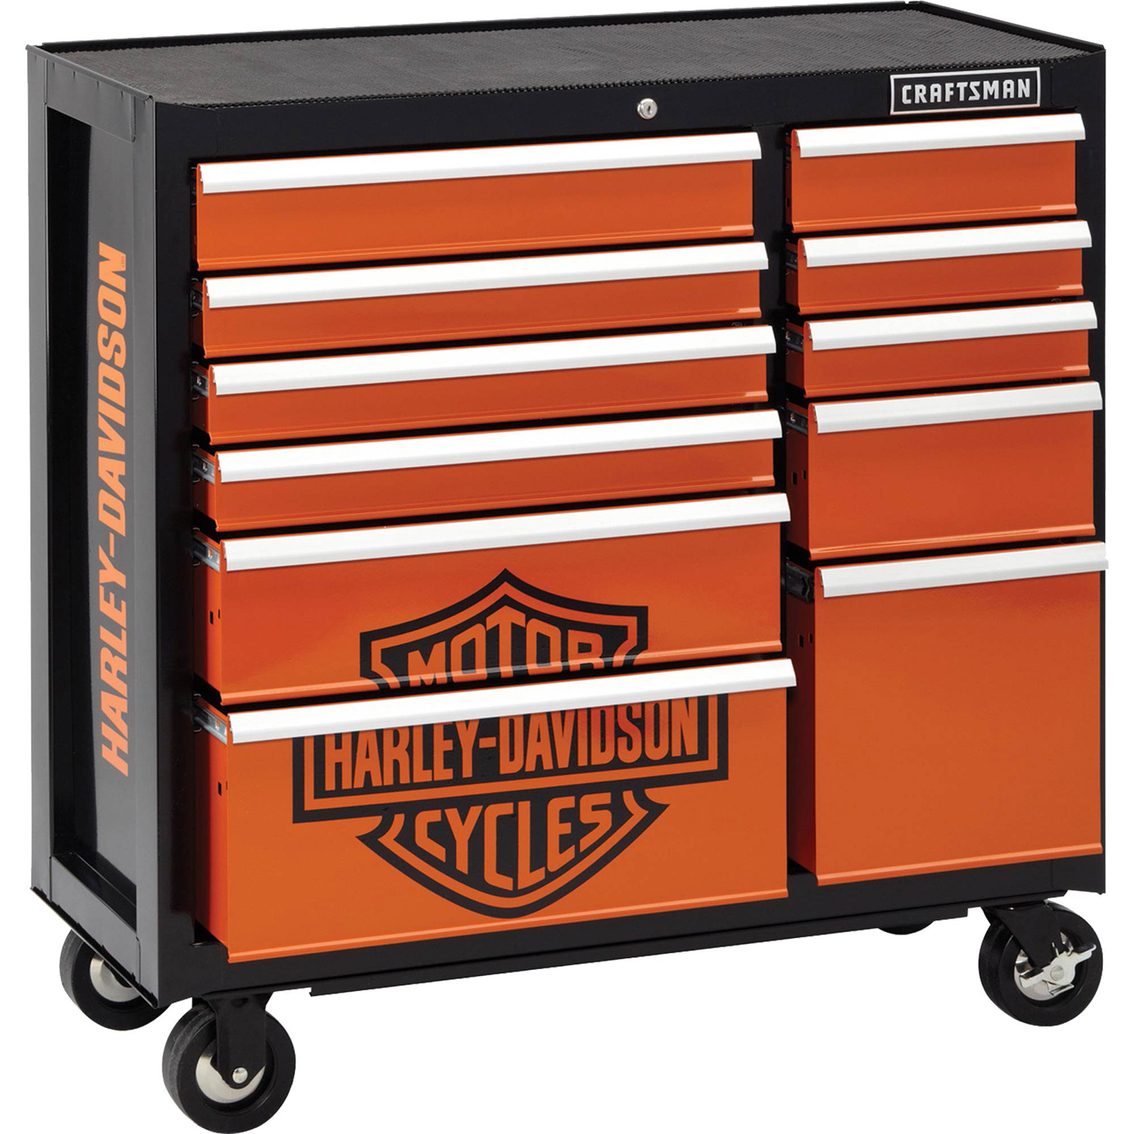 Craftsman Harley Davidson 40 In 11 Drawer Rolling Cart